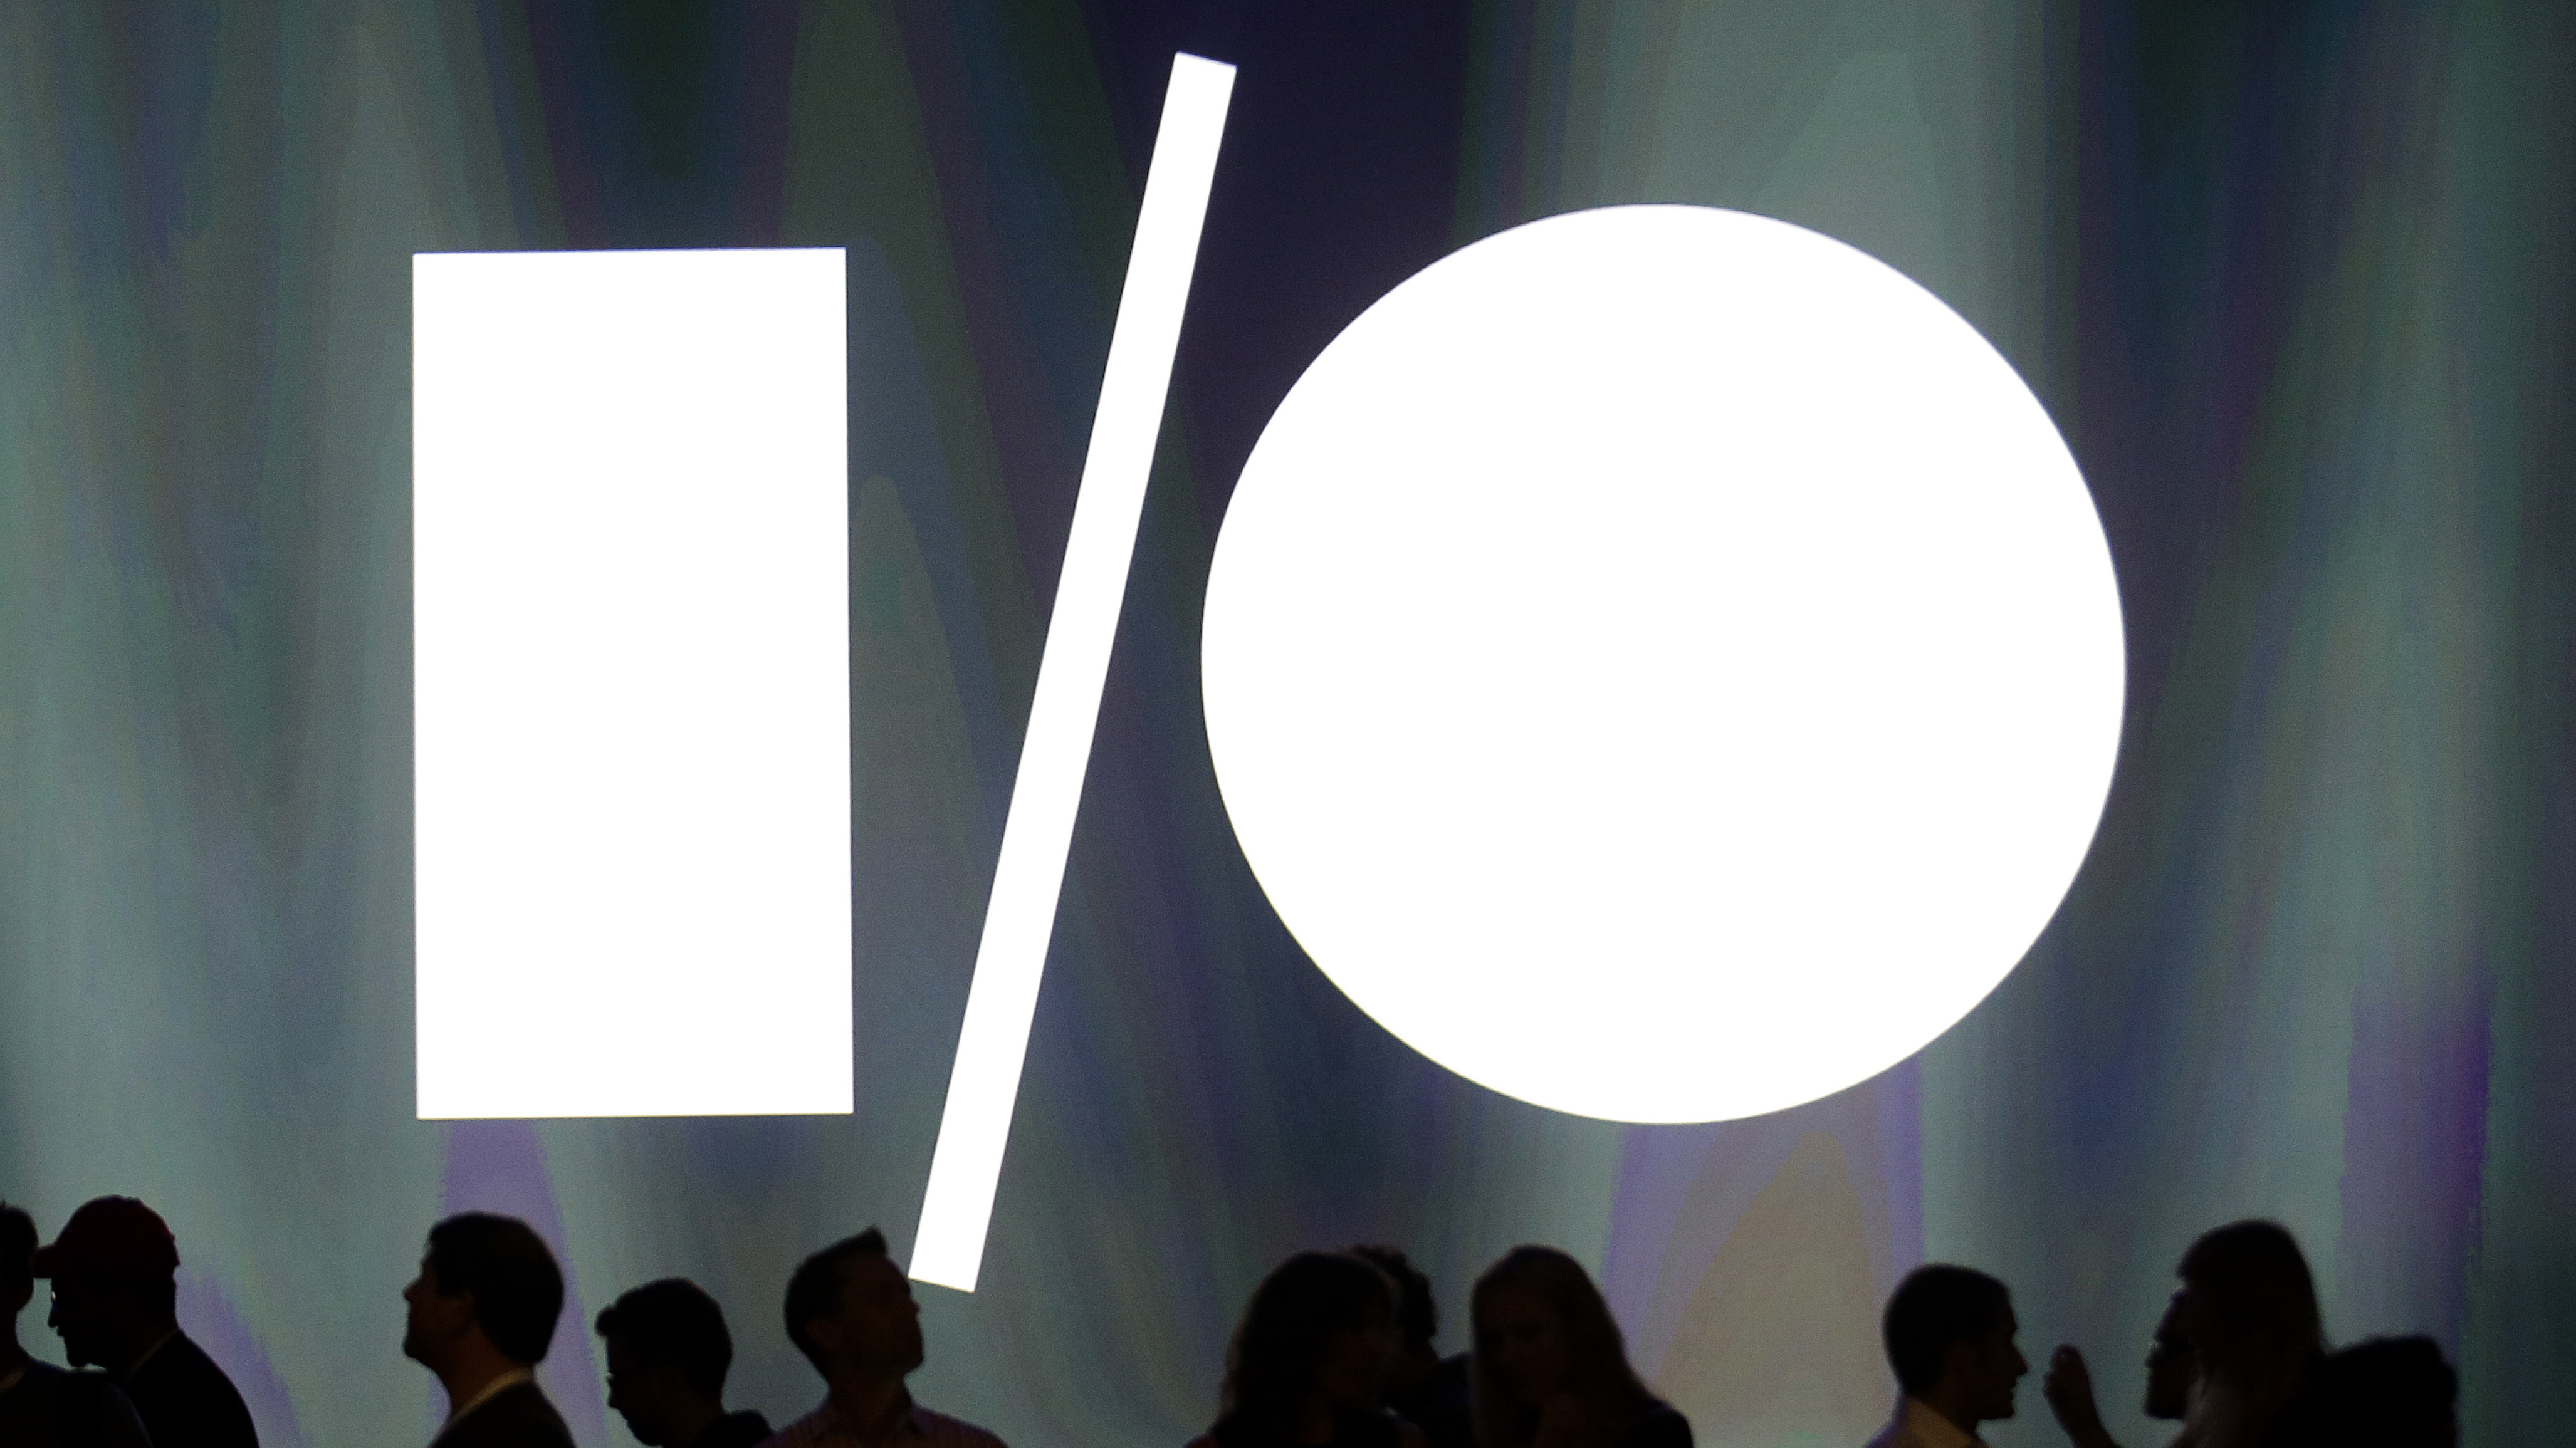 Attendees of the Google I/O 2014 keynote presentation stand in front of the screen at Moscone Center in San Francisco, Wednesday, June 25, 2014. Google is expected to reveal an Android update, smart home devices and other innovations at its two-day developer conference. (AP Photo/Jeff Chiu)